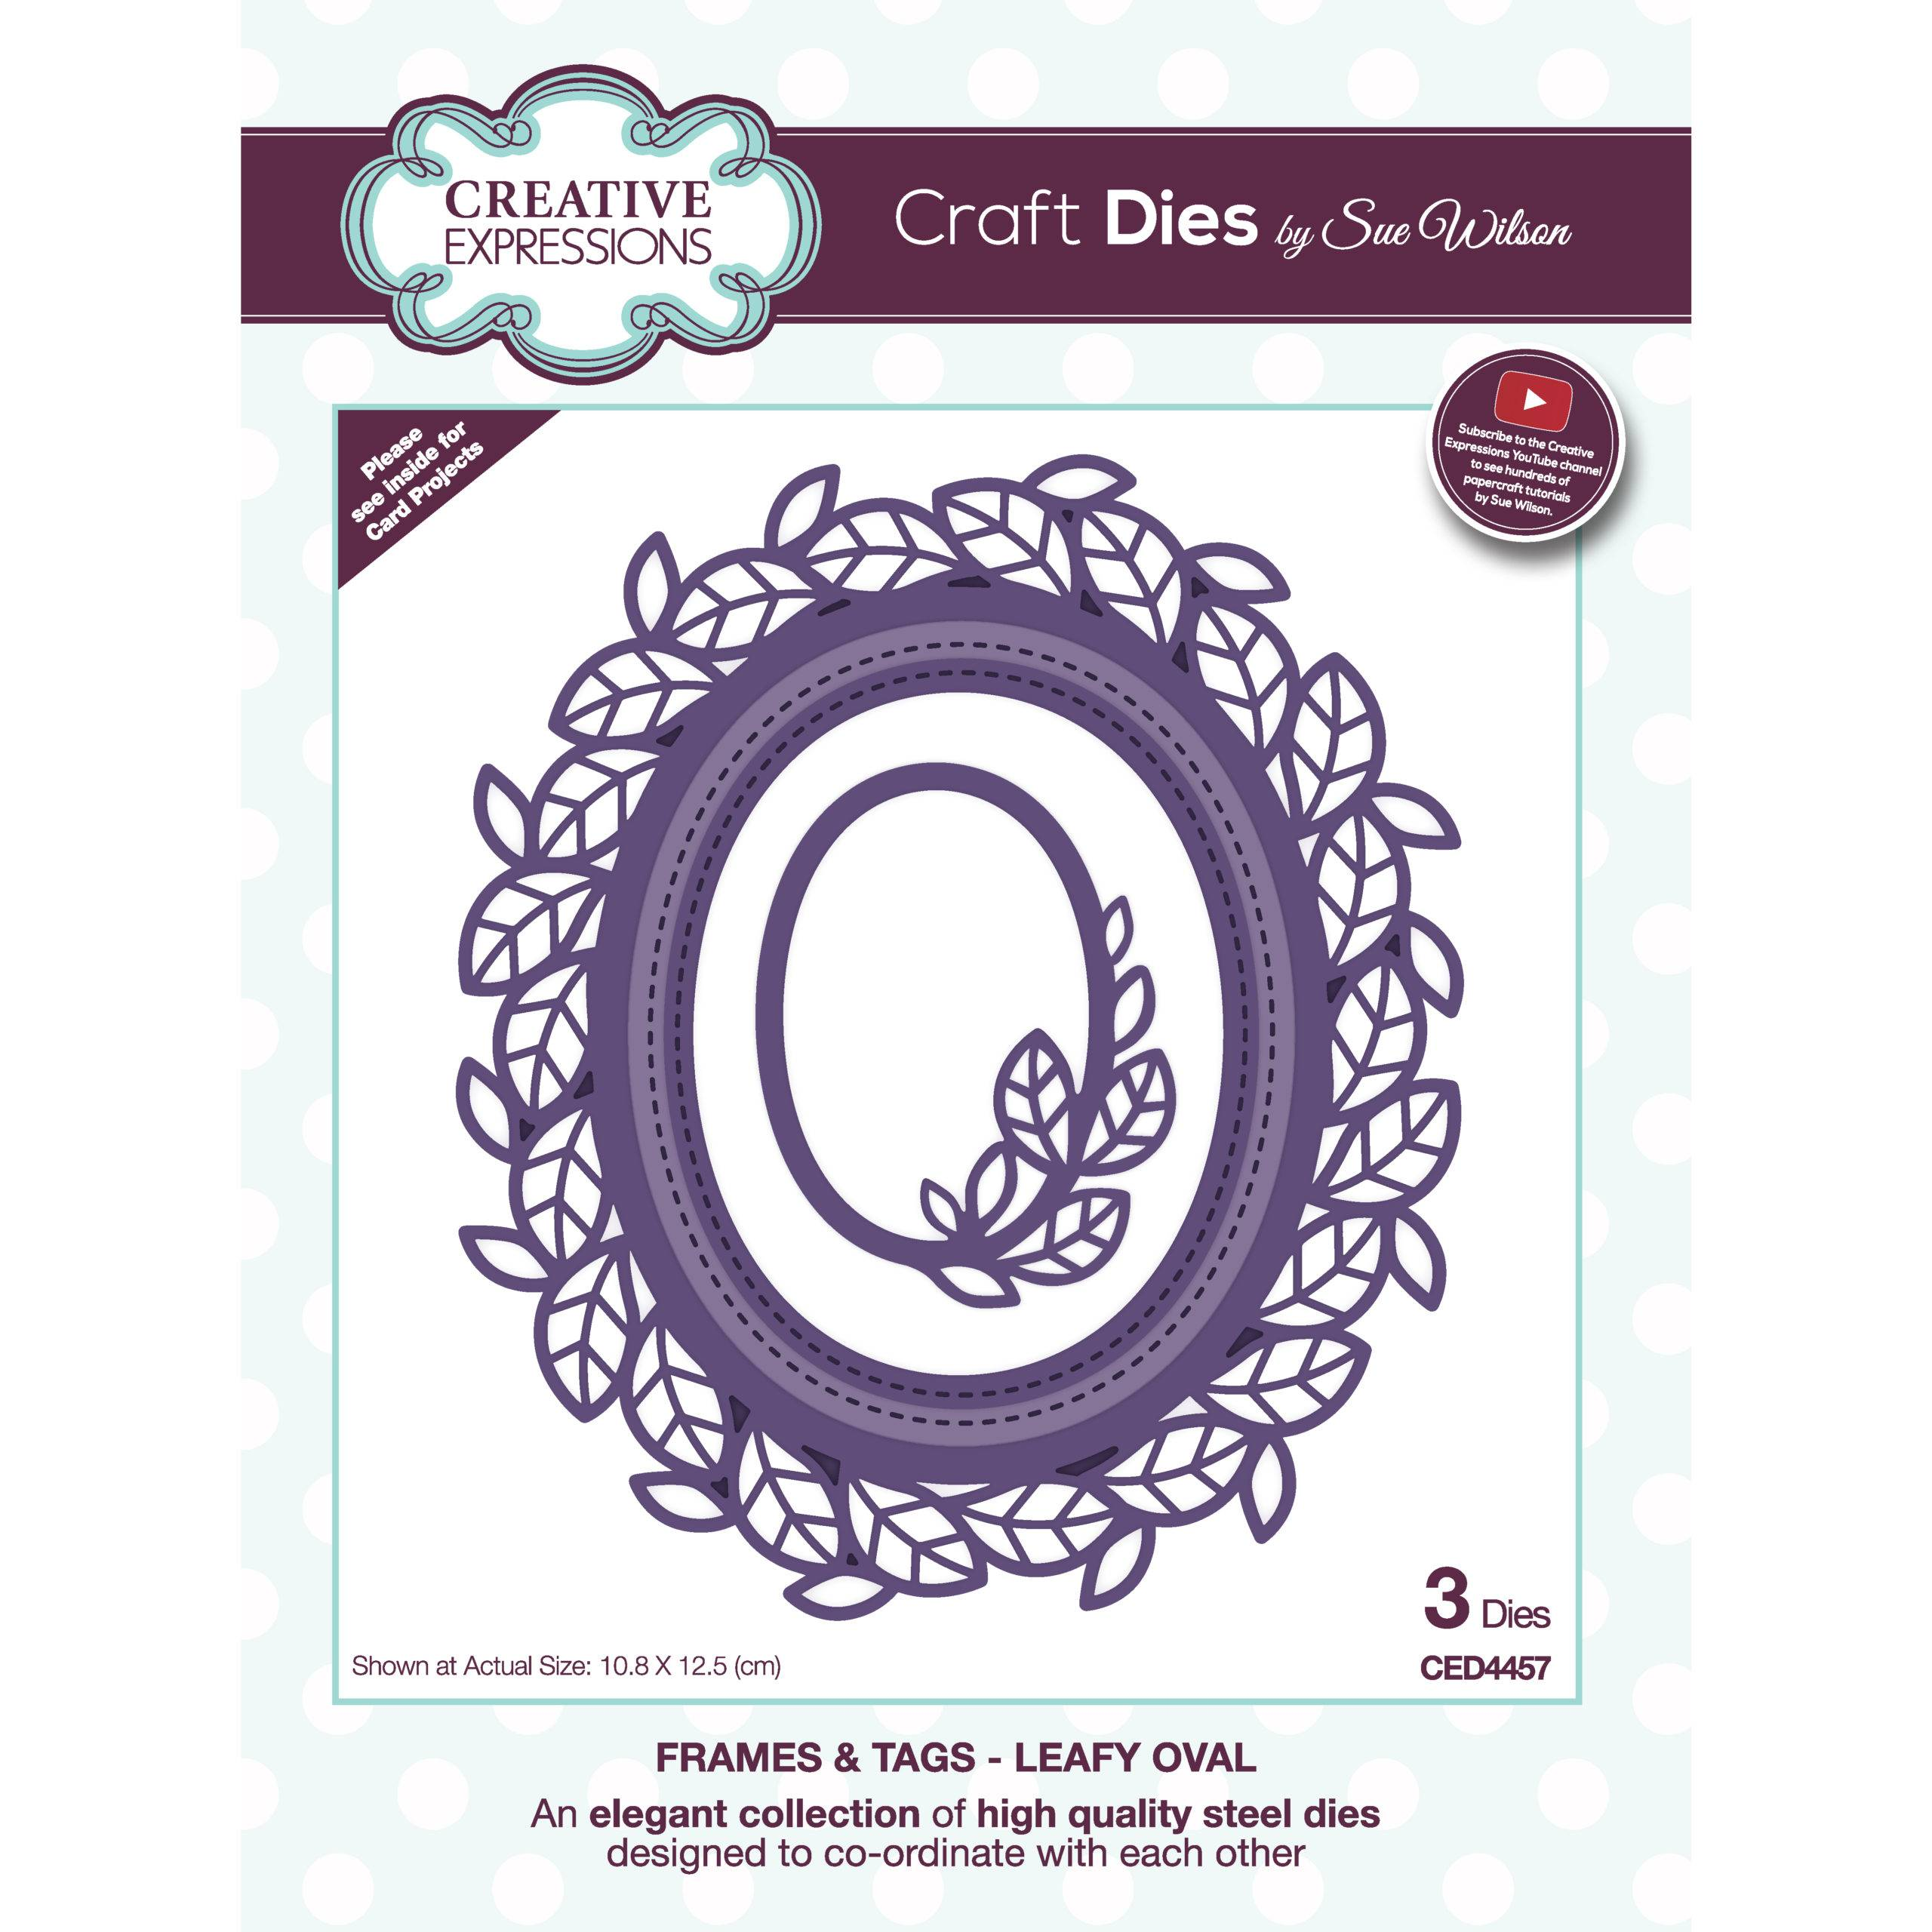 Paper Cuts Edger Dies Apr 2020 CREATIVE EXPRESSIONS Paper Cuts Collection Die